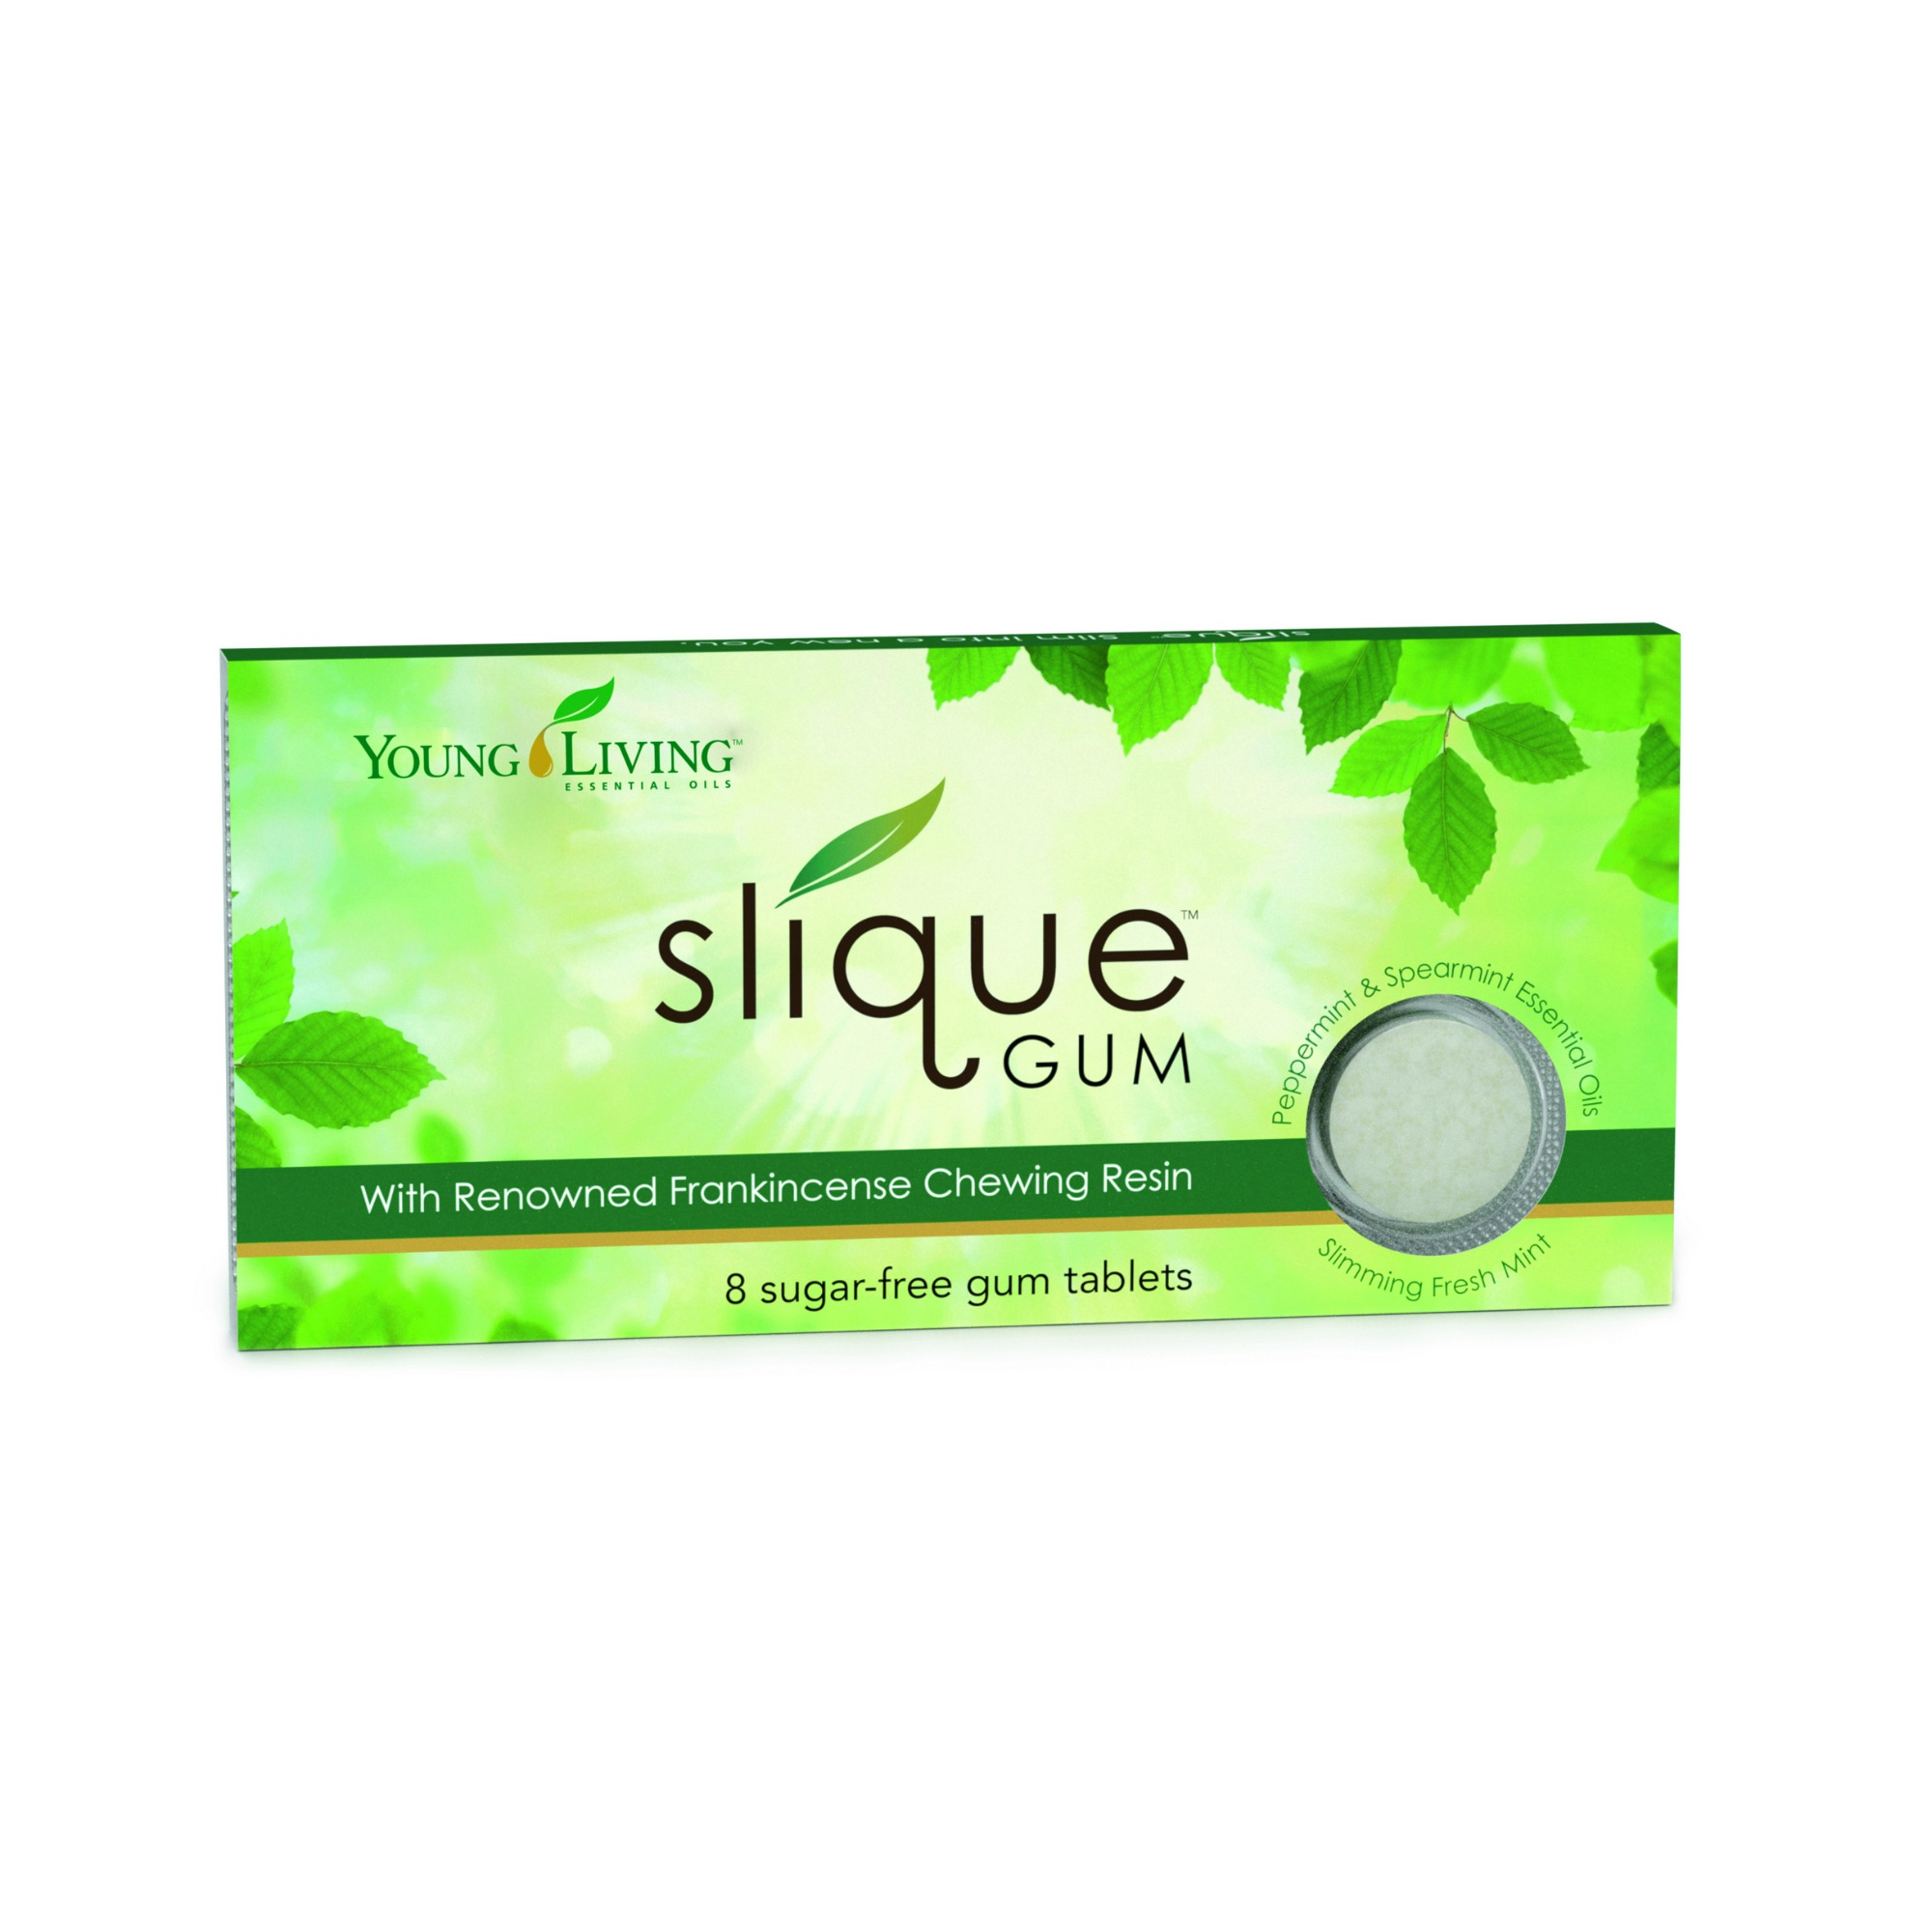 SLIQUE GUM    Ancient travelers throughout the Middle East used raw frankincense resin for its nutritional content and ability to help control hunger. Slique™ Gum offers those same benefits in a modern delivery system that helps control food cravings and improve oral health.   Click here   to learn more about this product.